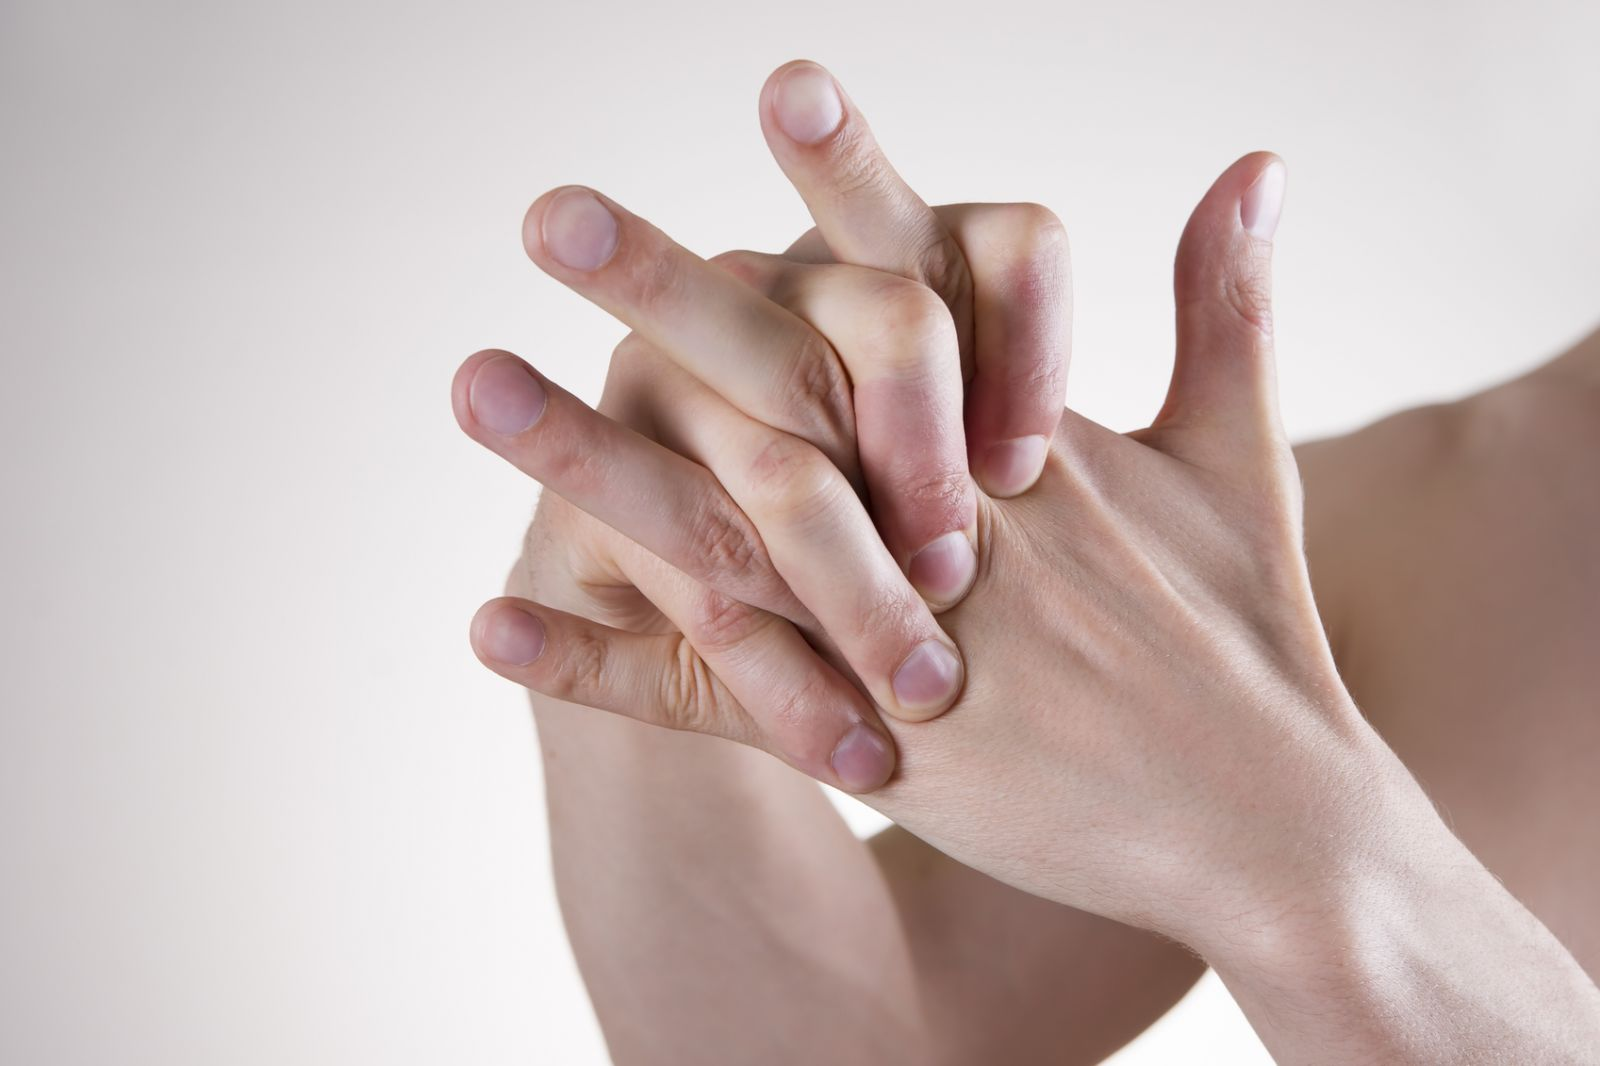 5 exercises to improve hand mobility - Harvard Health